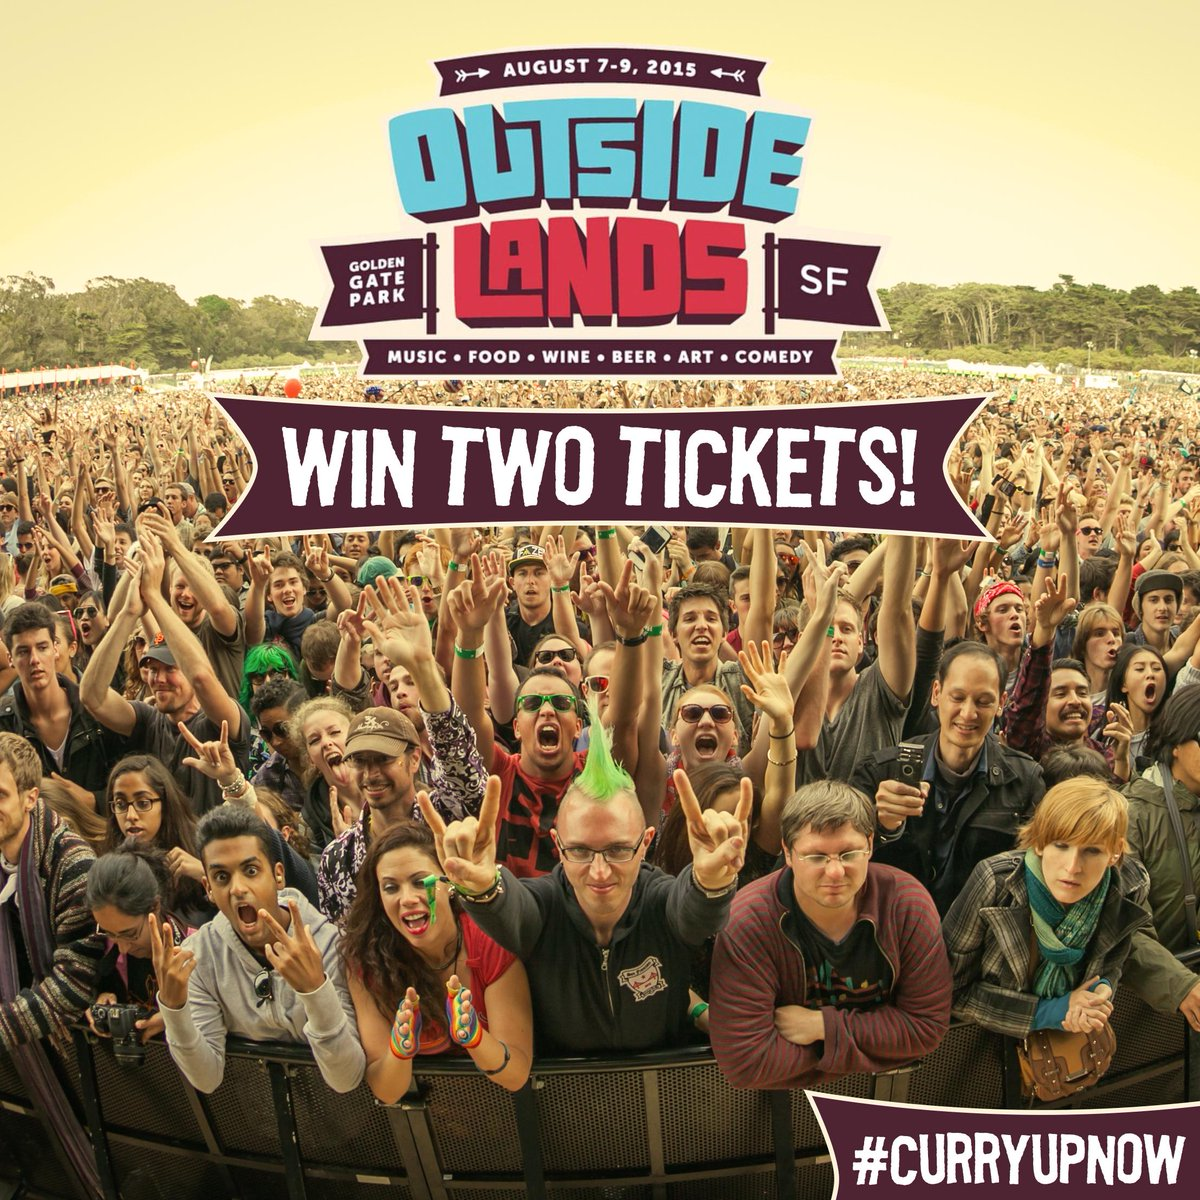 WIN 2 TICKETS to sold out @outsidelandssf - 1. Follow us, 2. Repost, 3. Tag us & #curryupnow. Winner announced Thurs! http://t.co/czPjIh68R9